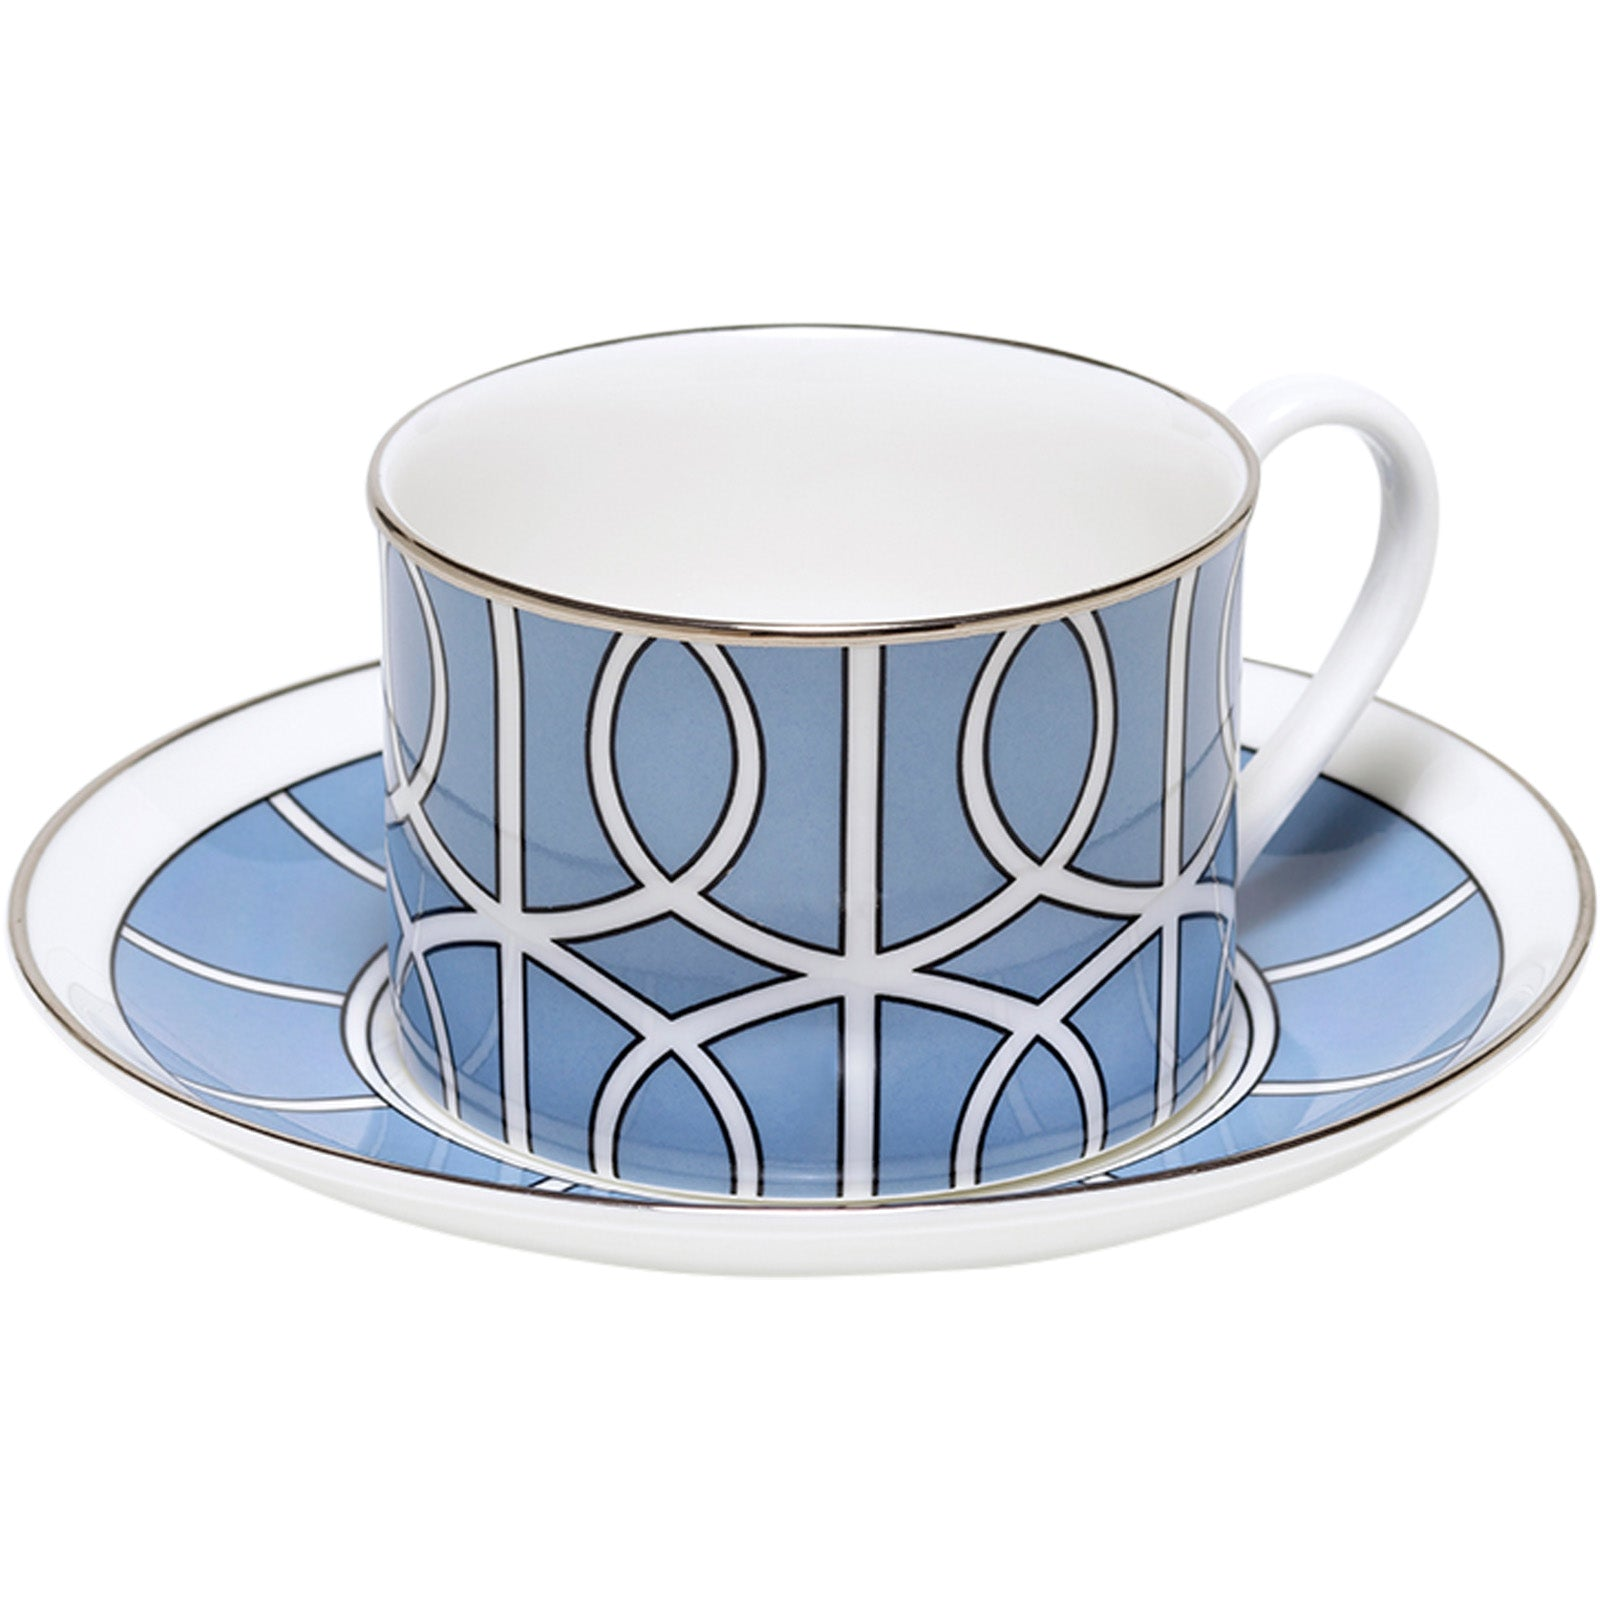 Loop Cornflower Blue And White Teacup & Saucer (Silver)